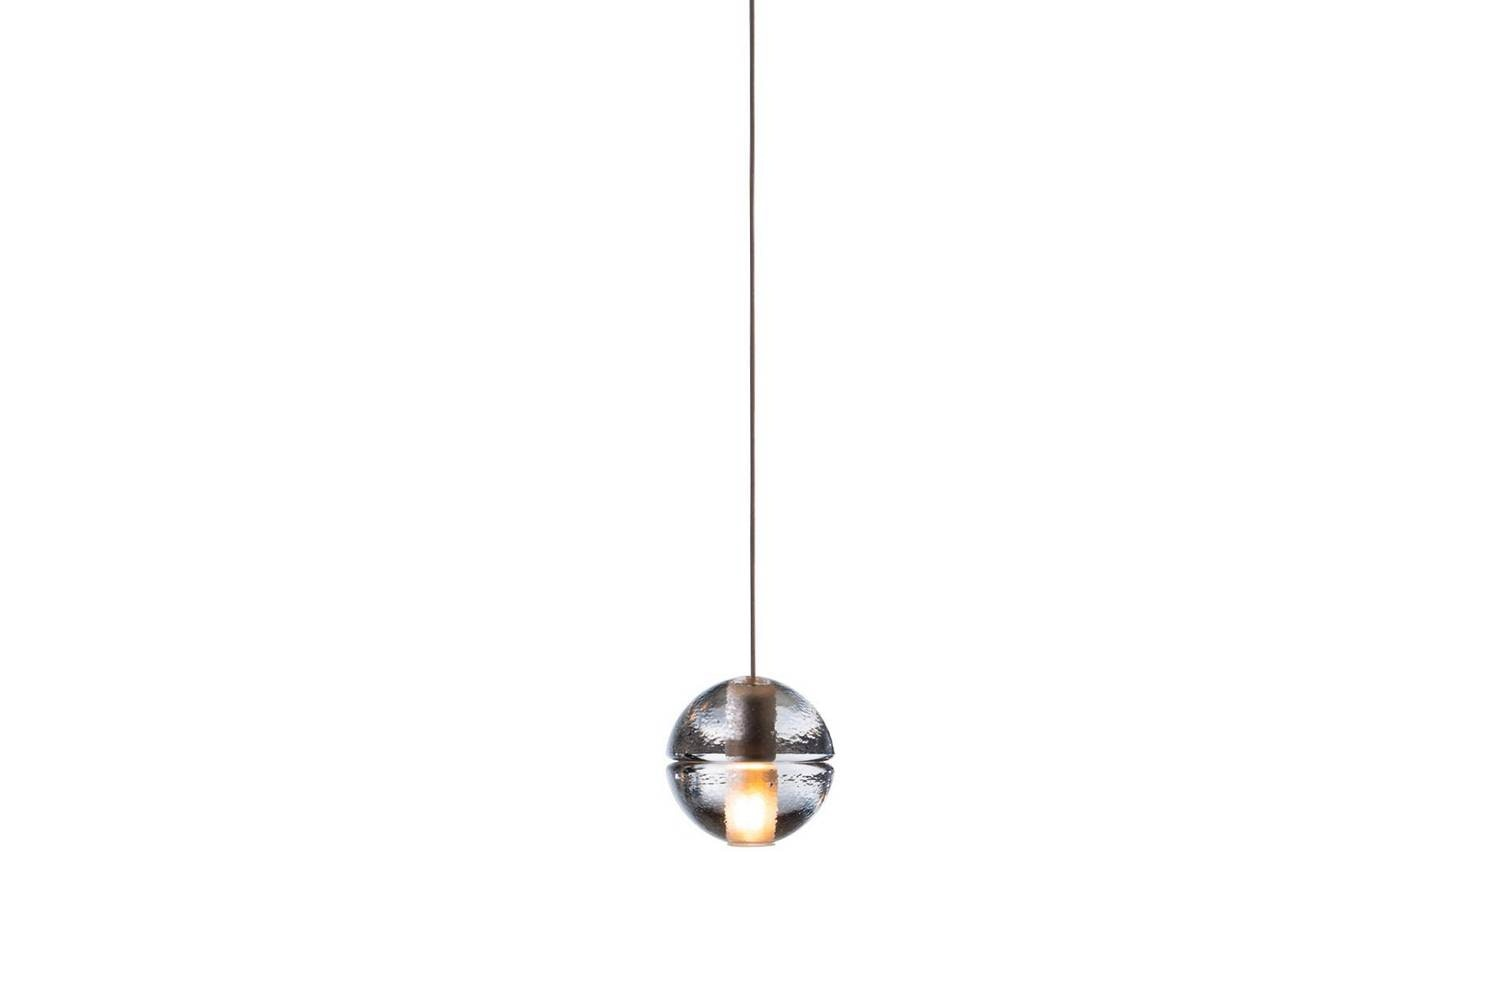 14.1 Suspension Lamp by Omer Arbel for Bocci